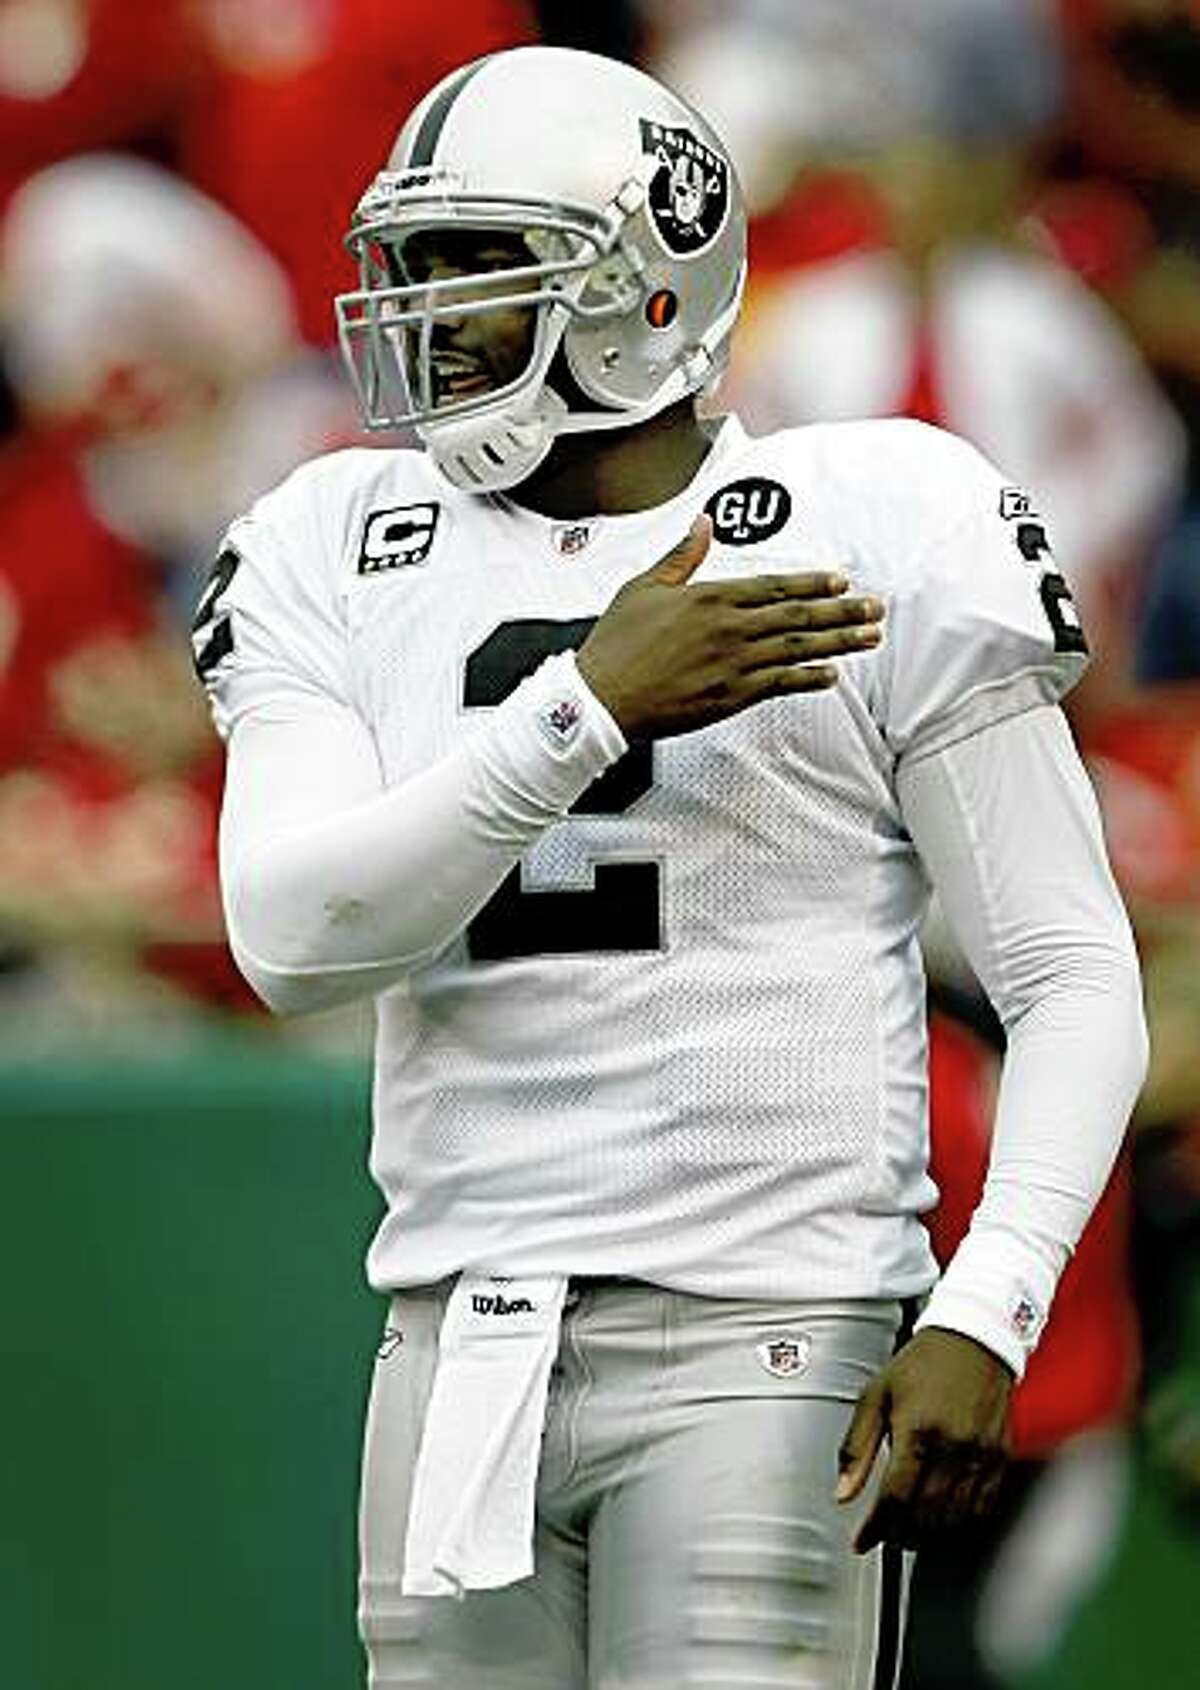 JaMarcus Russell had the Oakland Raiders moving in the right direction against the Kansas City Chiefs at Arrowhead Stadium in Kansas City, Mo., on Sunday, Sept. 14, 2008.